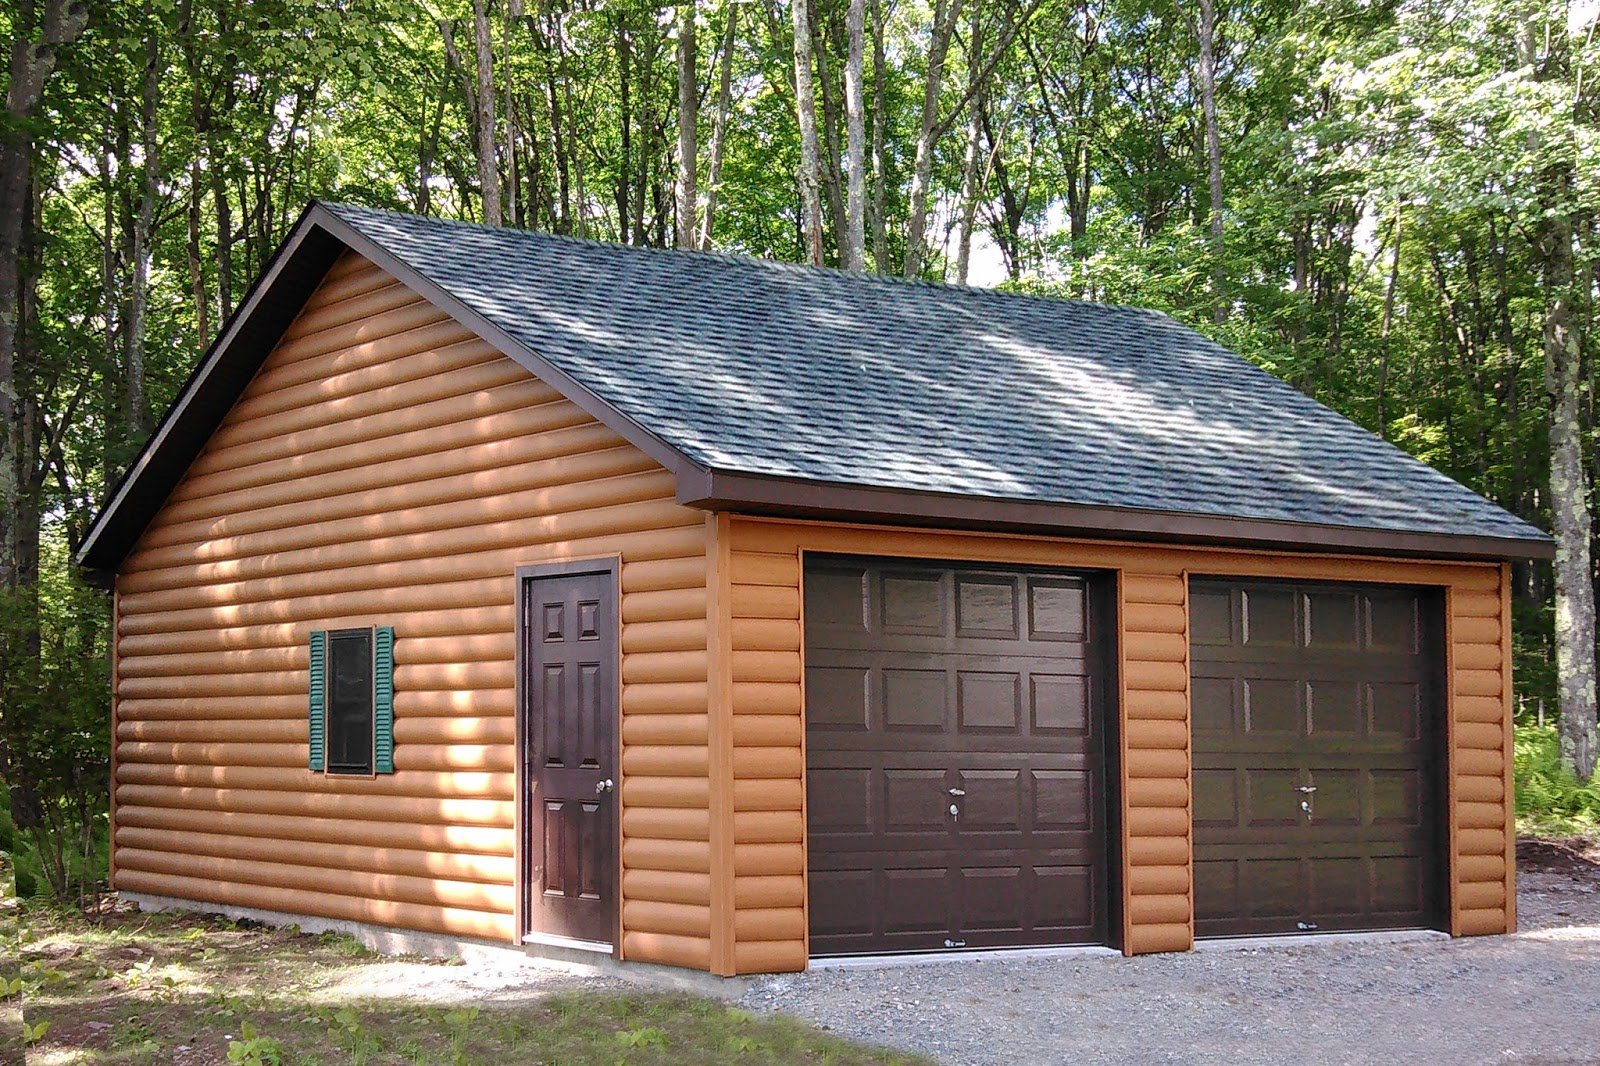 Prefab Car Garages For Sale In Pa Nj Ny Ct De Md Va